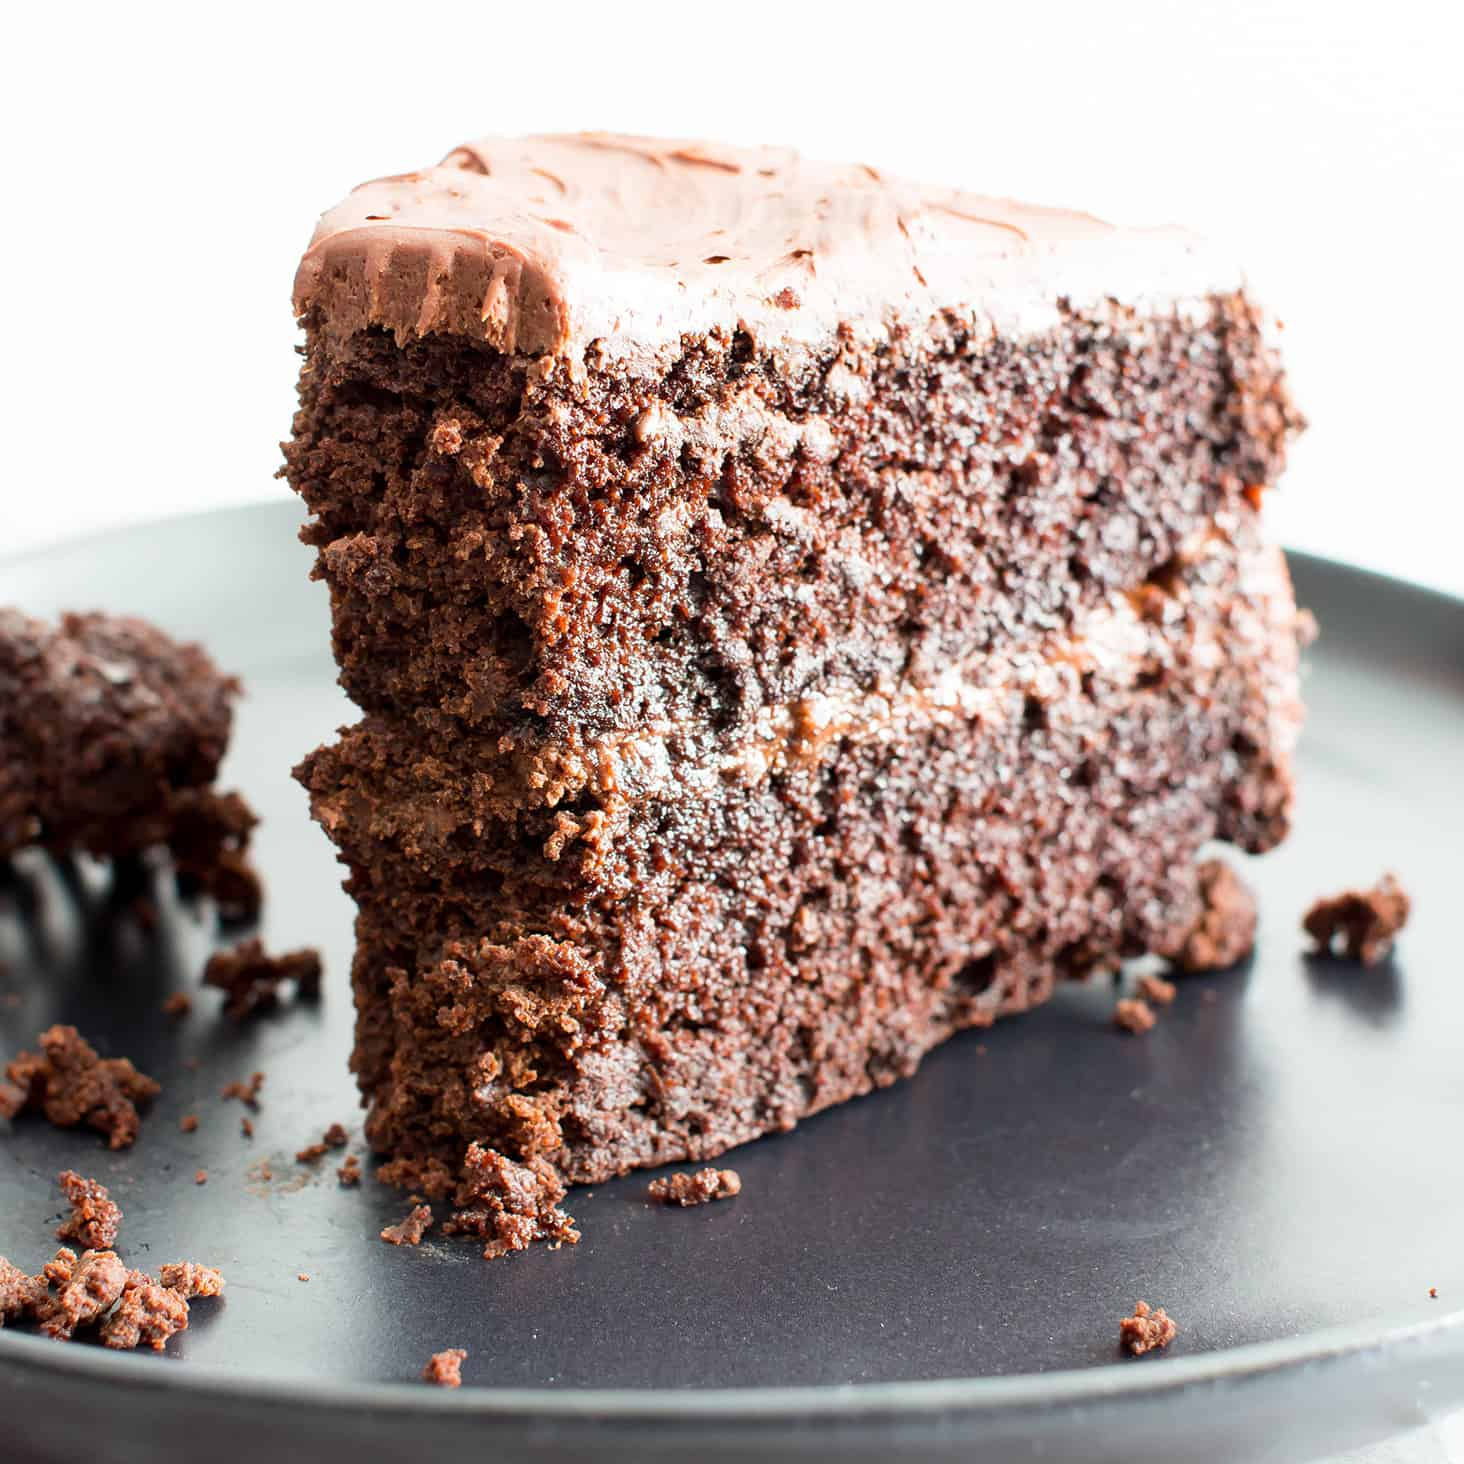 Vegan Chocolate Cake Recipe (V, GF): an easy recipe for supremely rich, perfectly moist chocolate cake covered in a delicious layer of irresistible chocolate frosting! #Vegan #GlutenFree #DairyFree #Chocolate #Cake #Dessert | Recipe on BeamingBaker.com